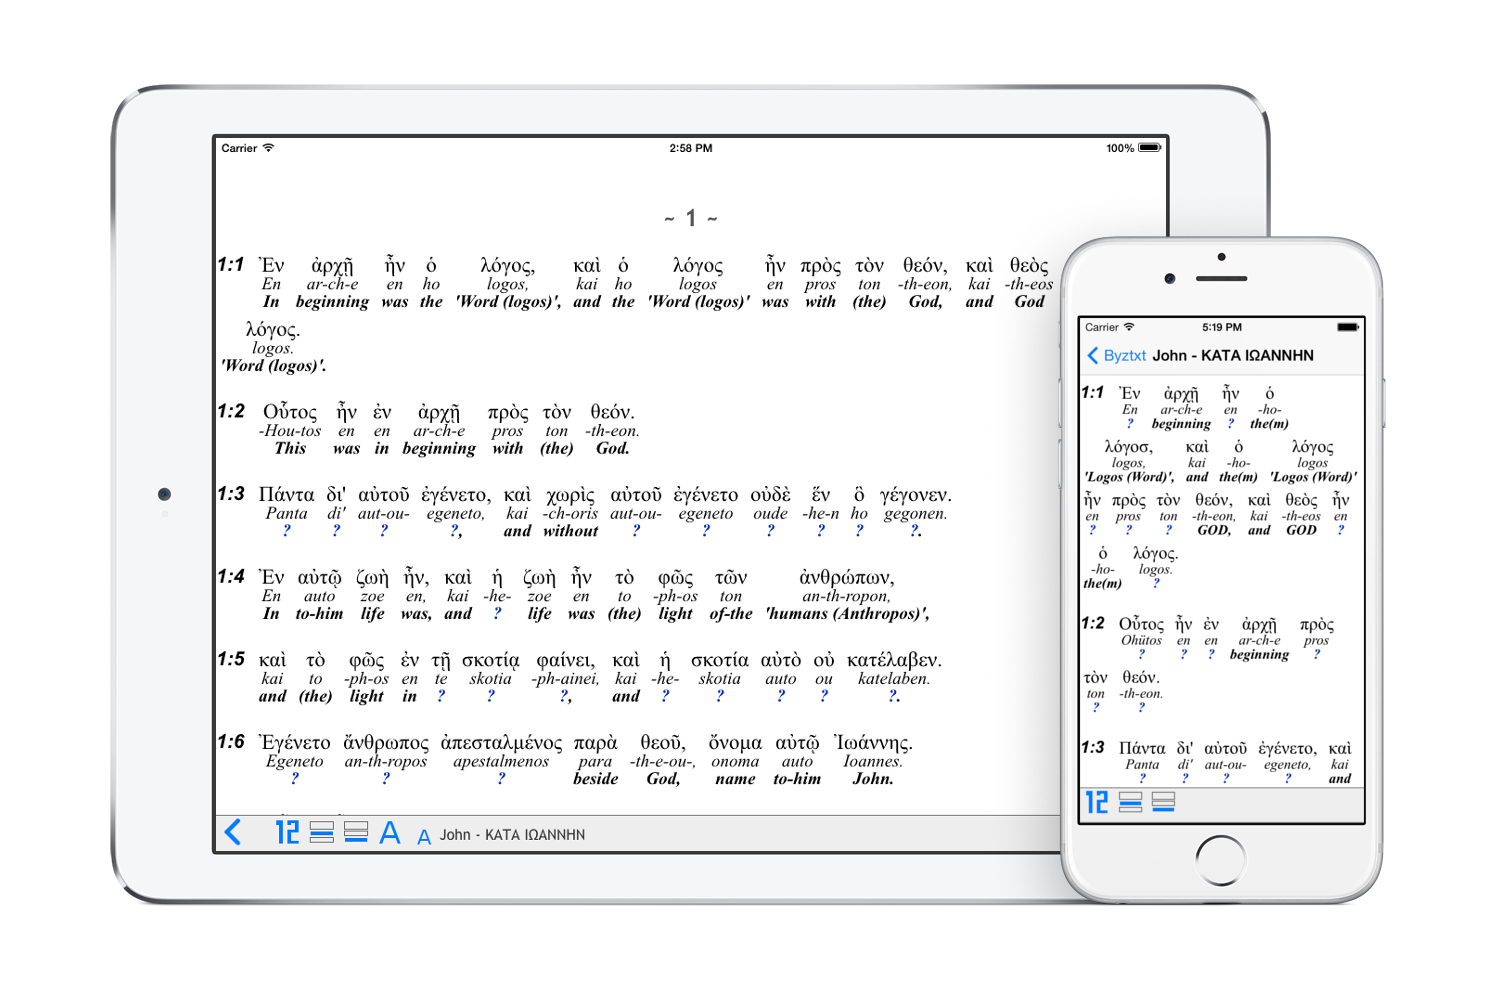 Byztxt on iPad Air 2 and iPhone 6